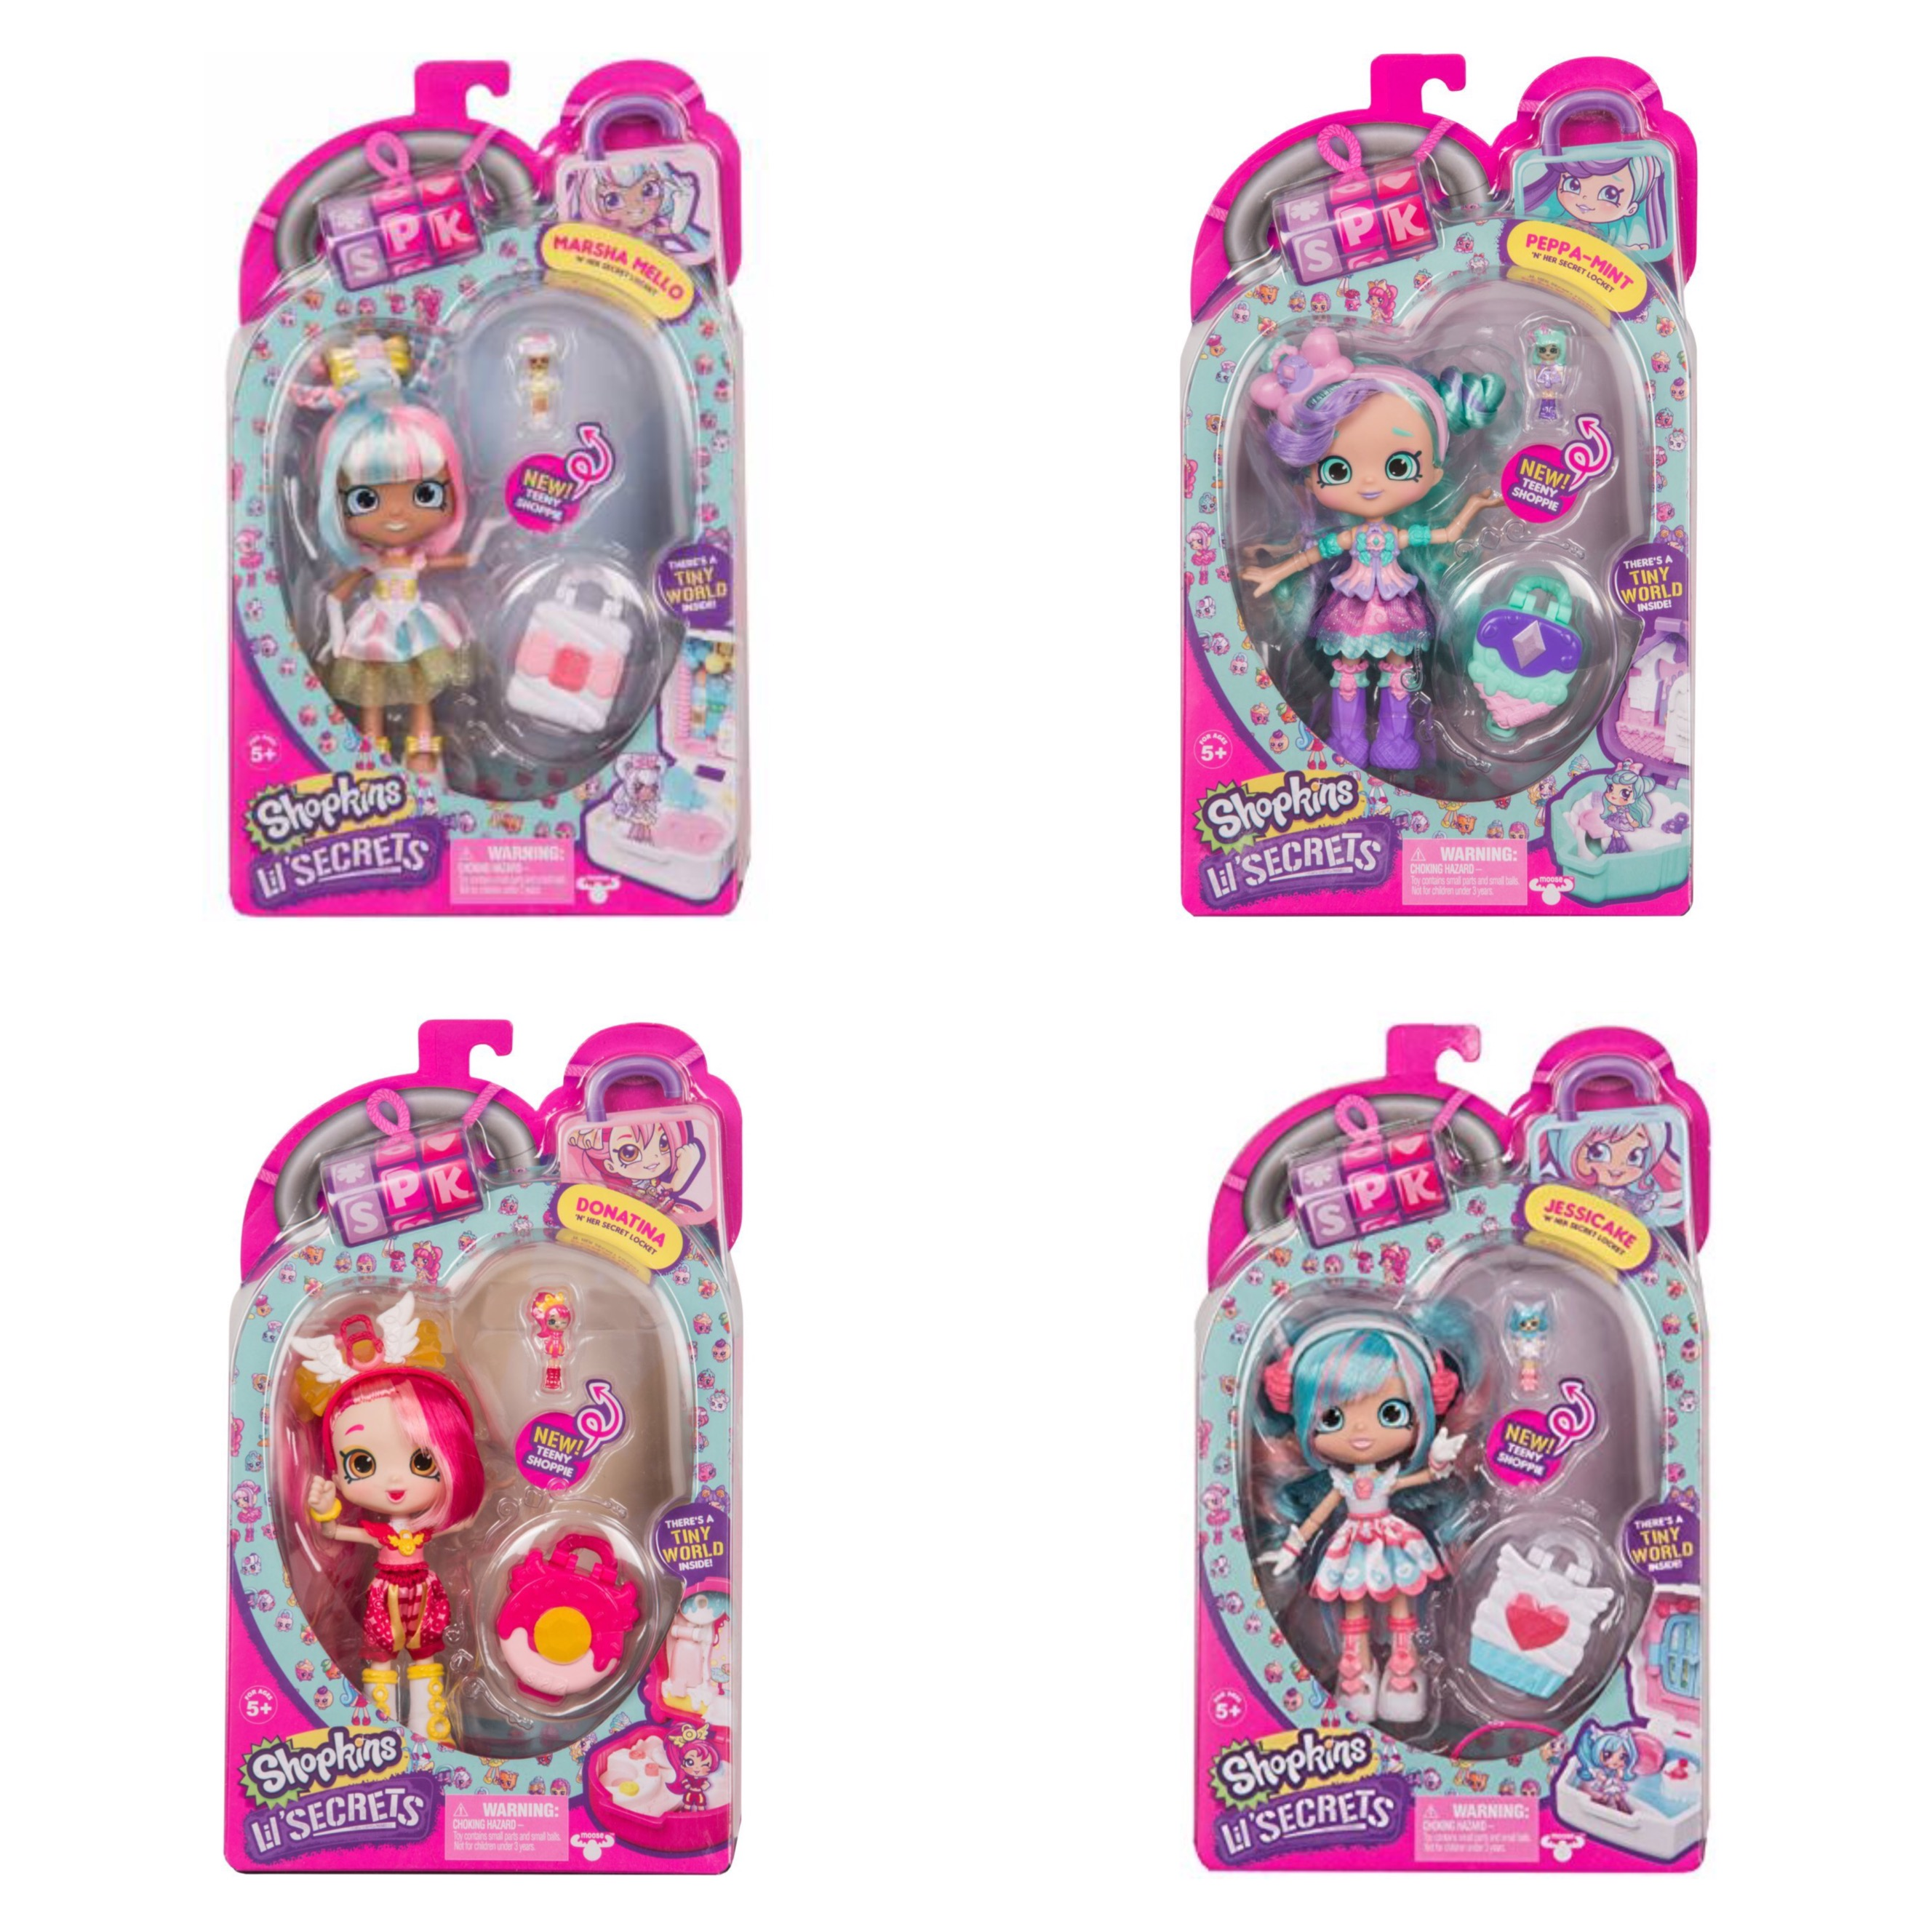 Shopkins Lil Secret Shoppies Peppa Mint, Marsha Mello, Jessicake & Donatina Lot